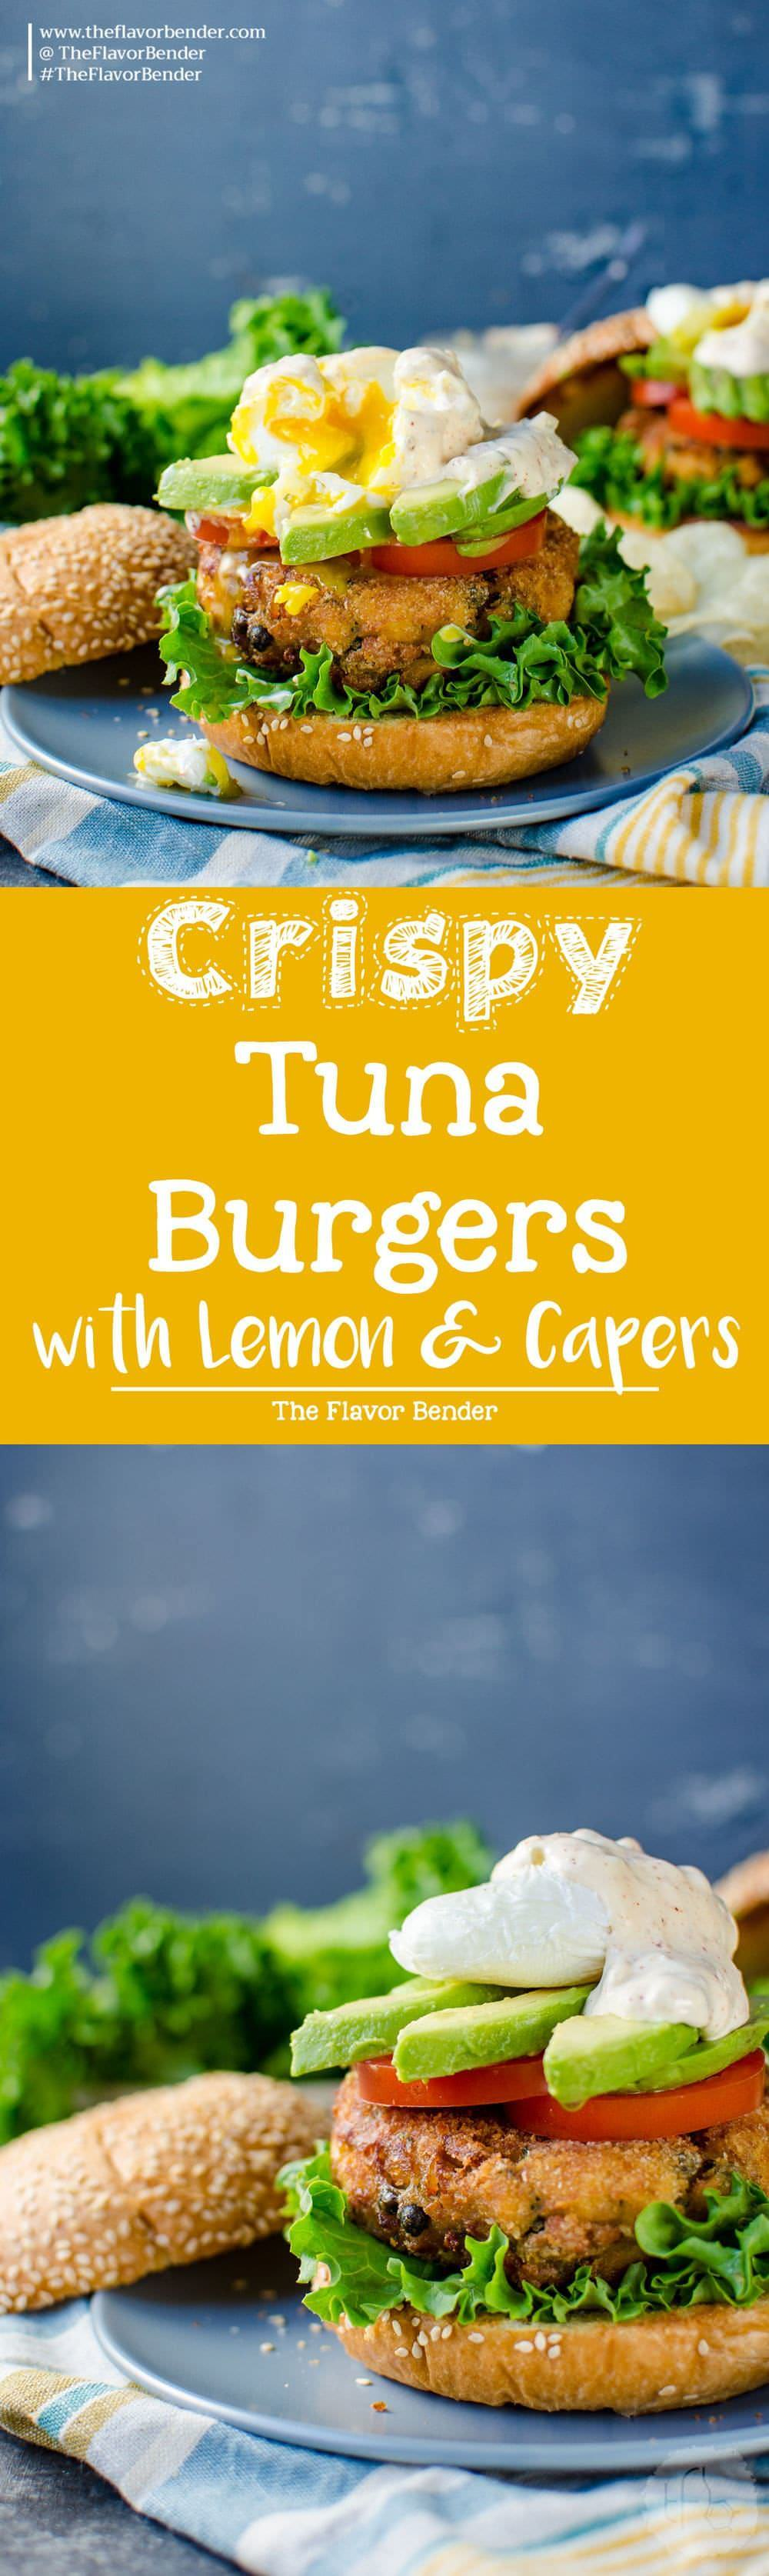 Crispy Tuna Burger with Lemon and Capers - A delicious burger topped with a spiced aioli tartar sauce, tomatoes, avocado and an egg. Transform your canned tuna into a scrumptious brunch burger or spectacular dinner with just a few easy steps.